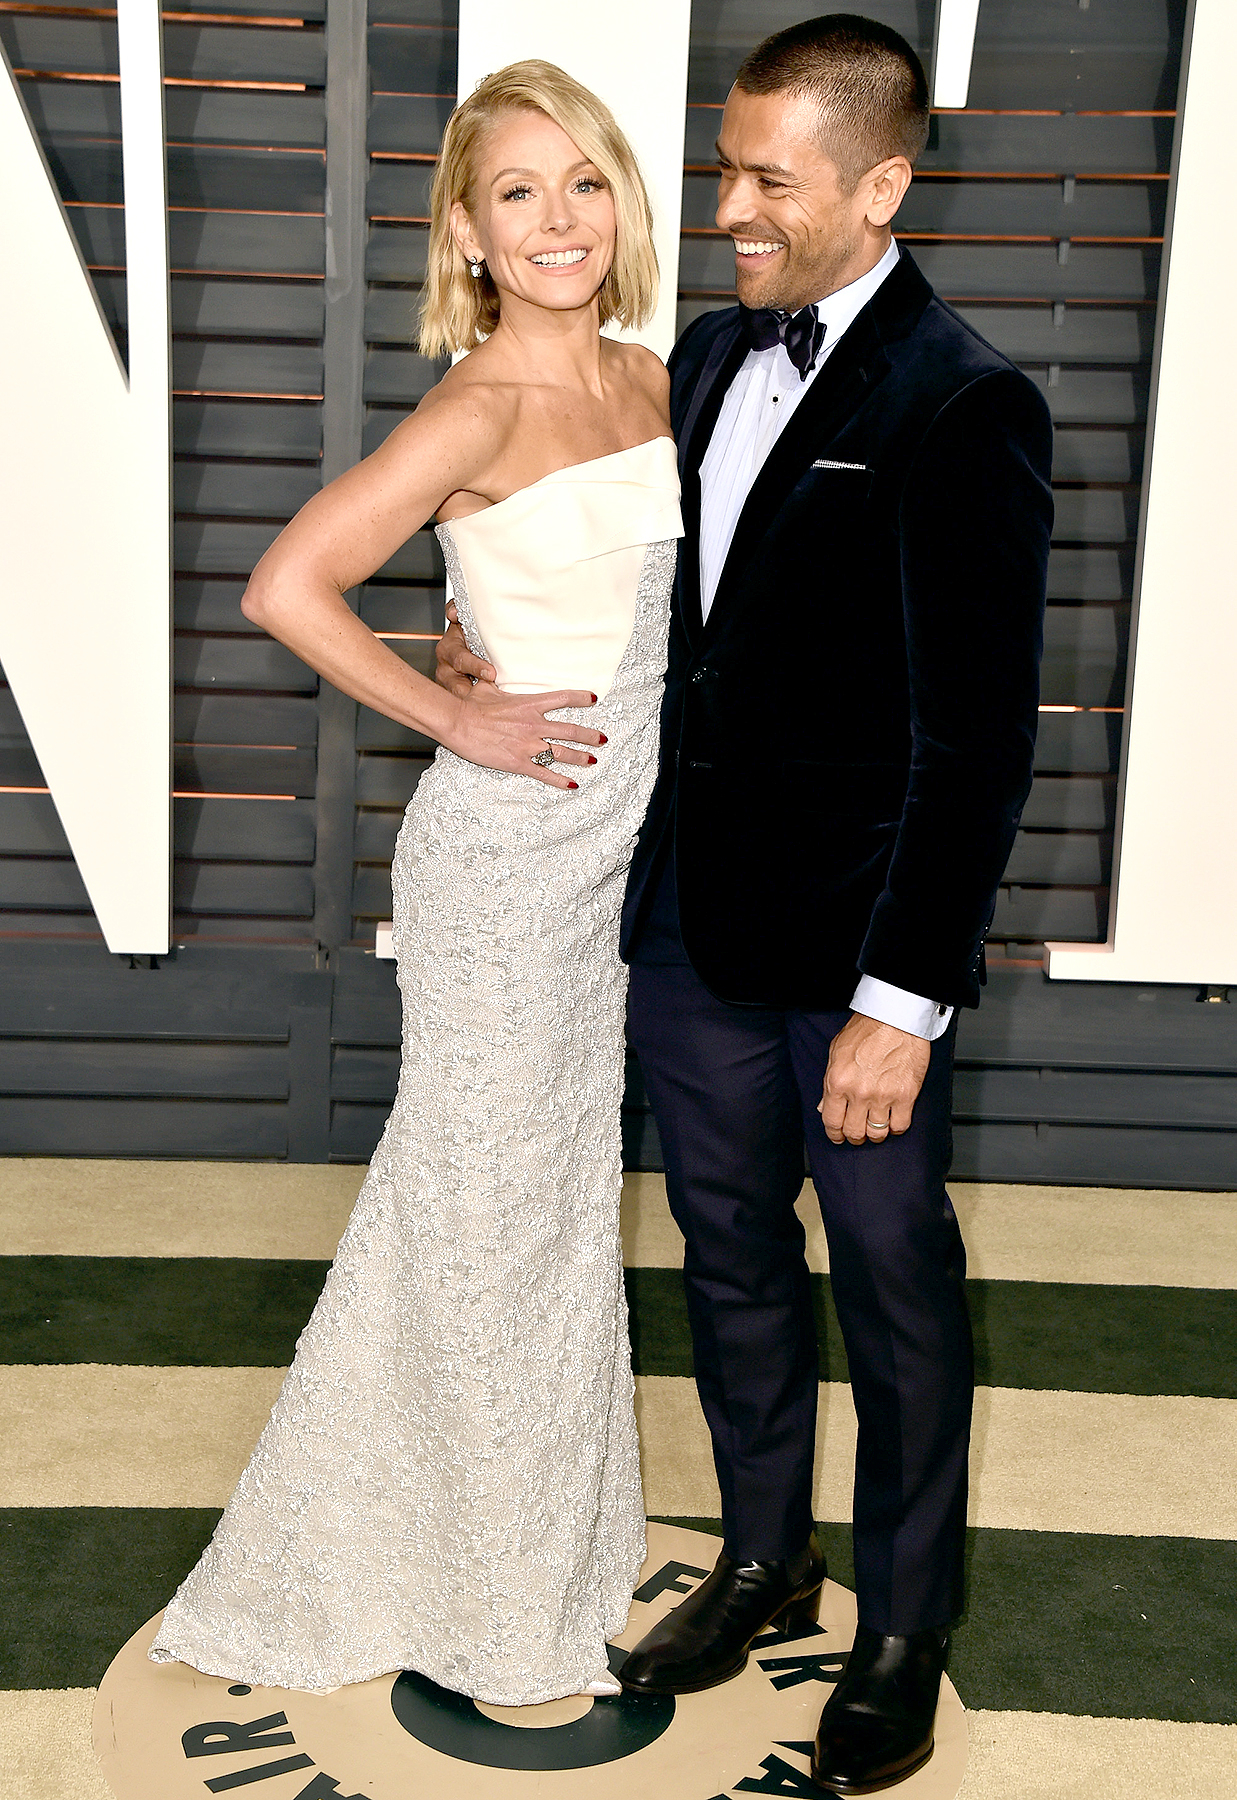 Kelly Ripa and Mark Consuelos attend the 2015 Vanity Fair Oscar Party hosted by Graydon Carter at Wallis Annenberg Center for the Performing Arts on February 22, 2015 in Beverly Hills, California.